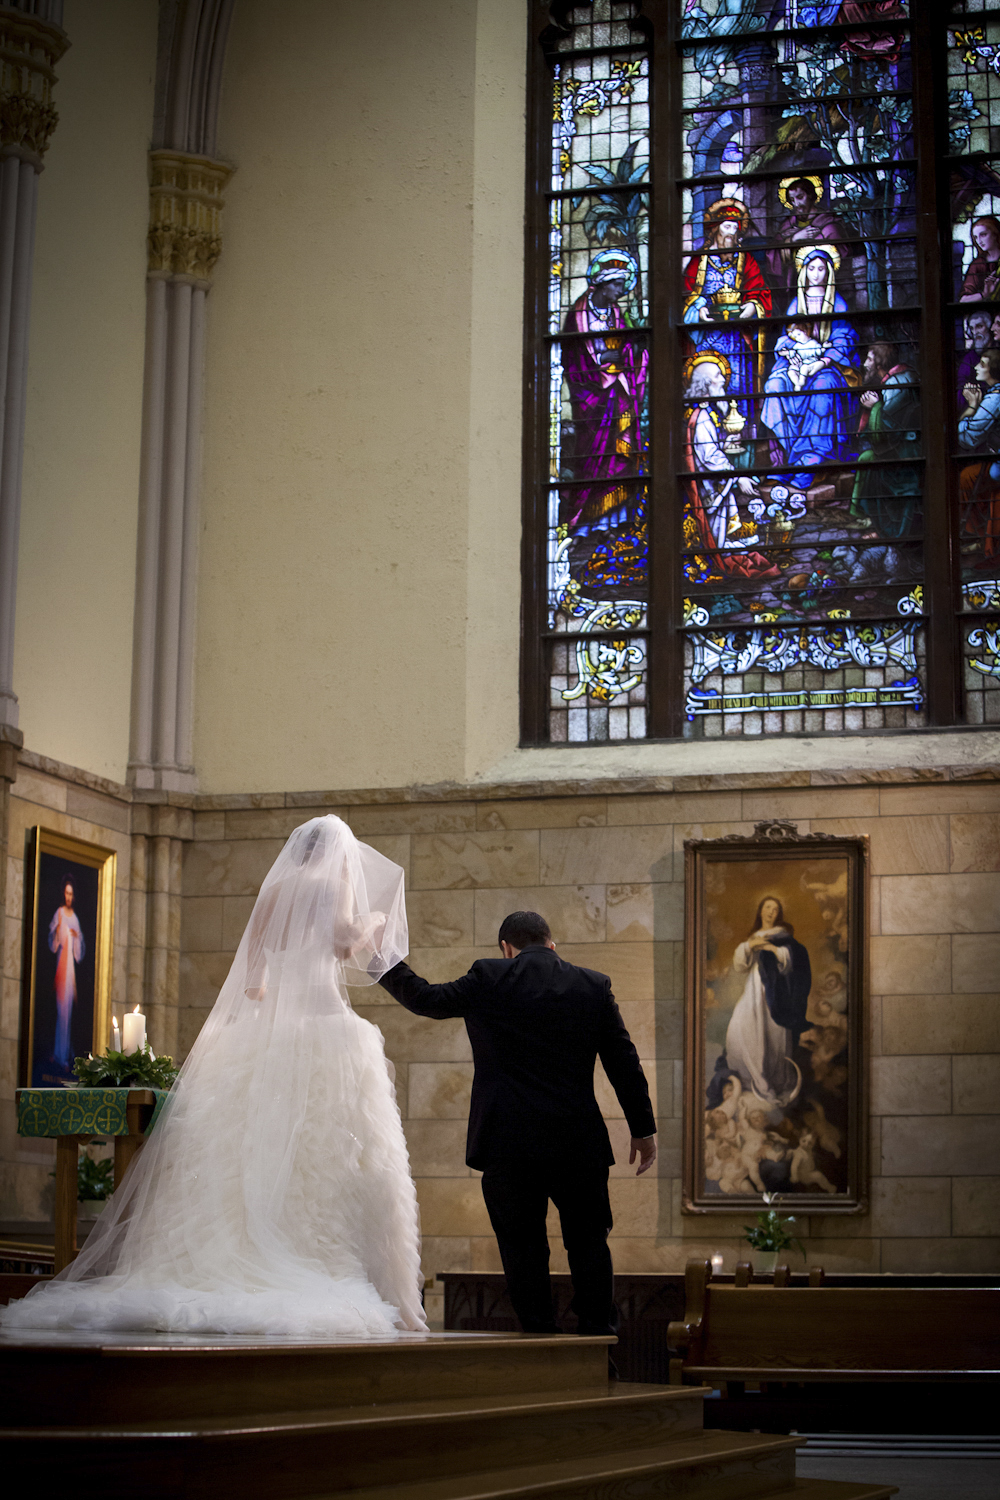 Saint-Marys-Cathedral-Indianapolis-Indiana-Wedding-Photographer-Crowes-Eye-Photography-290.jpg